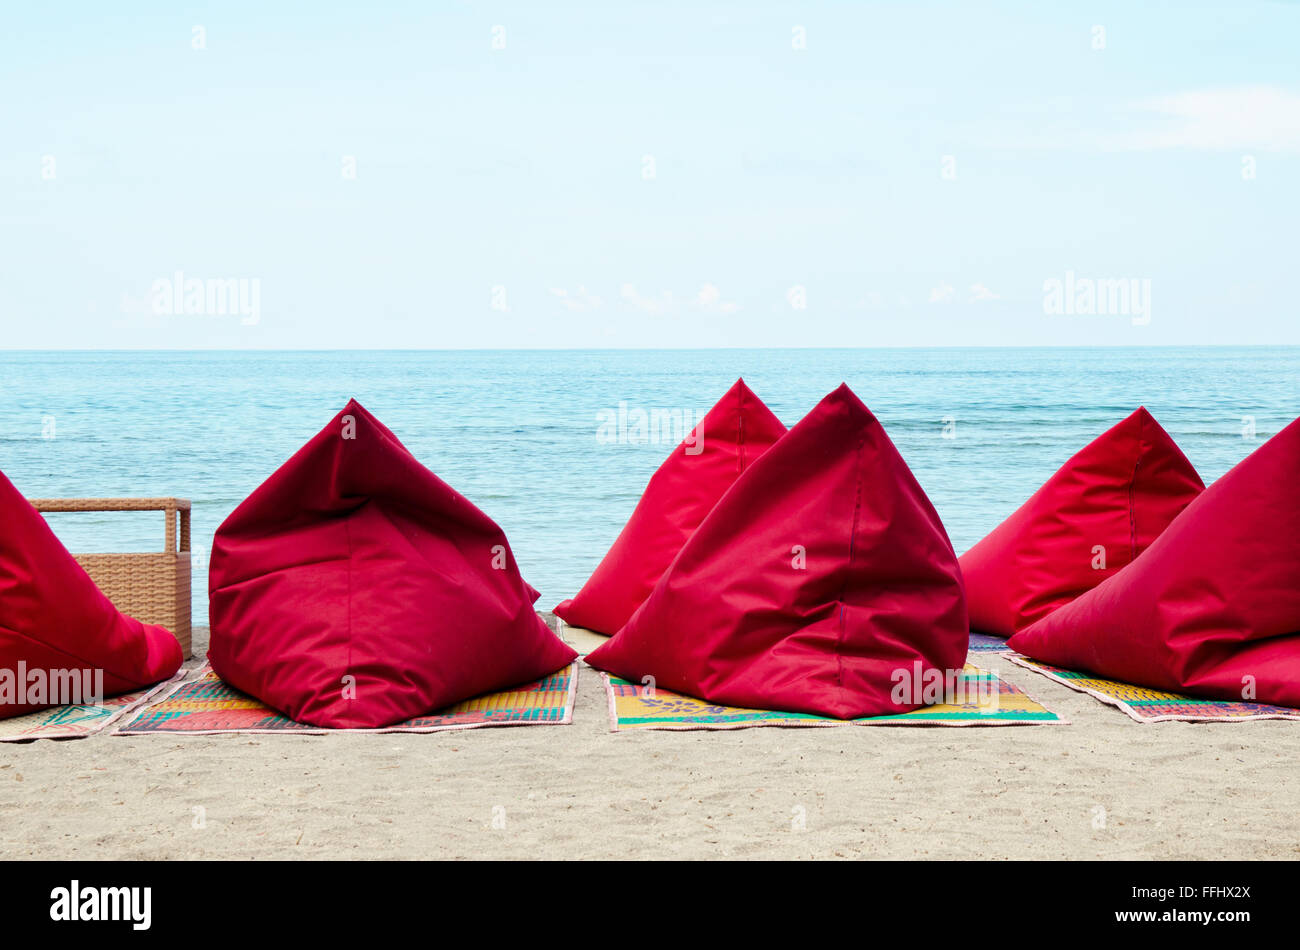 Red bean bags on the sand beach in Bali, Indonesia. Stock image. - Stock Image